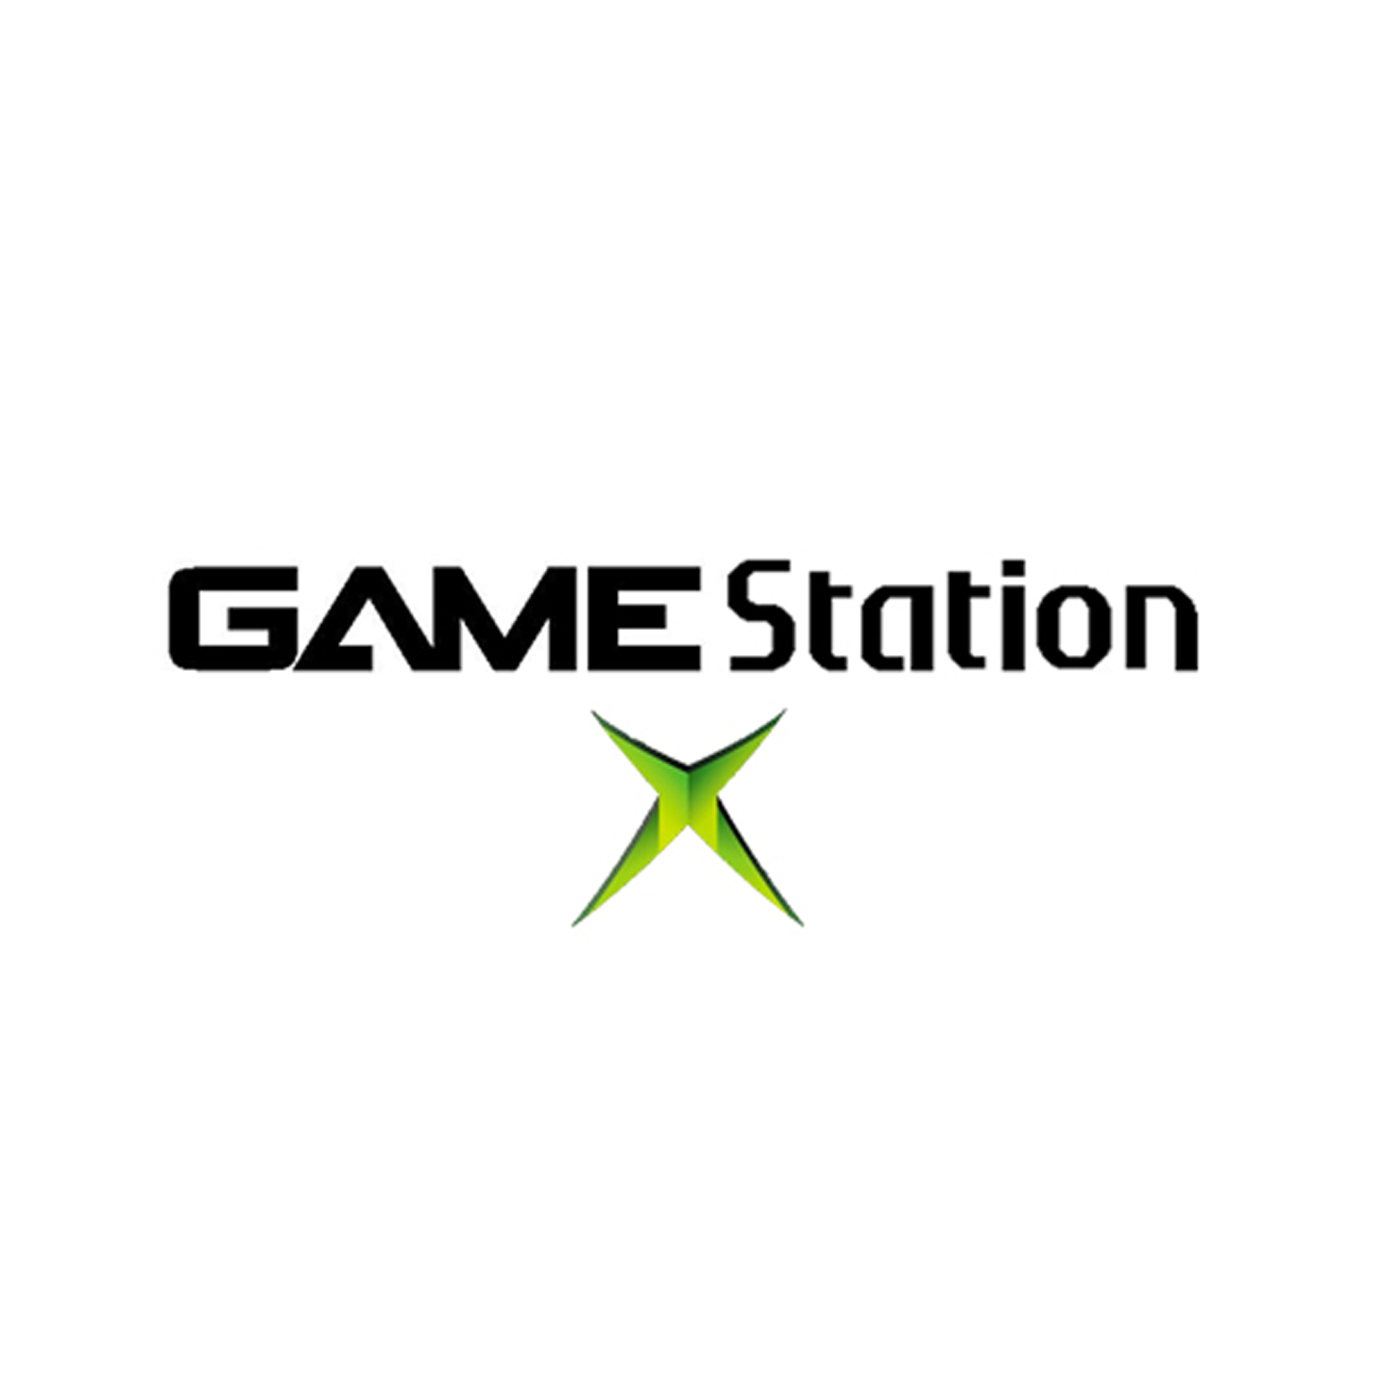 GameStation X